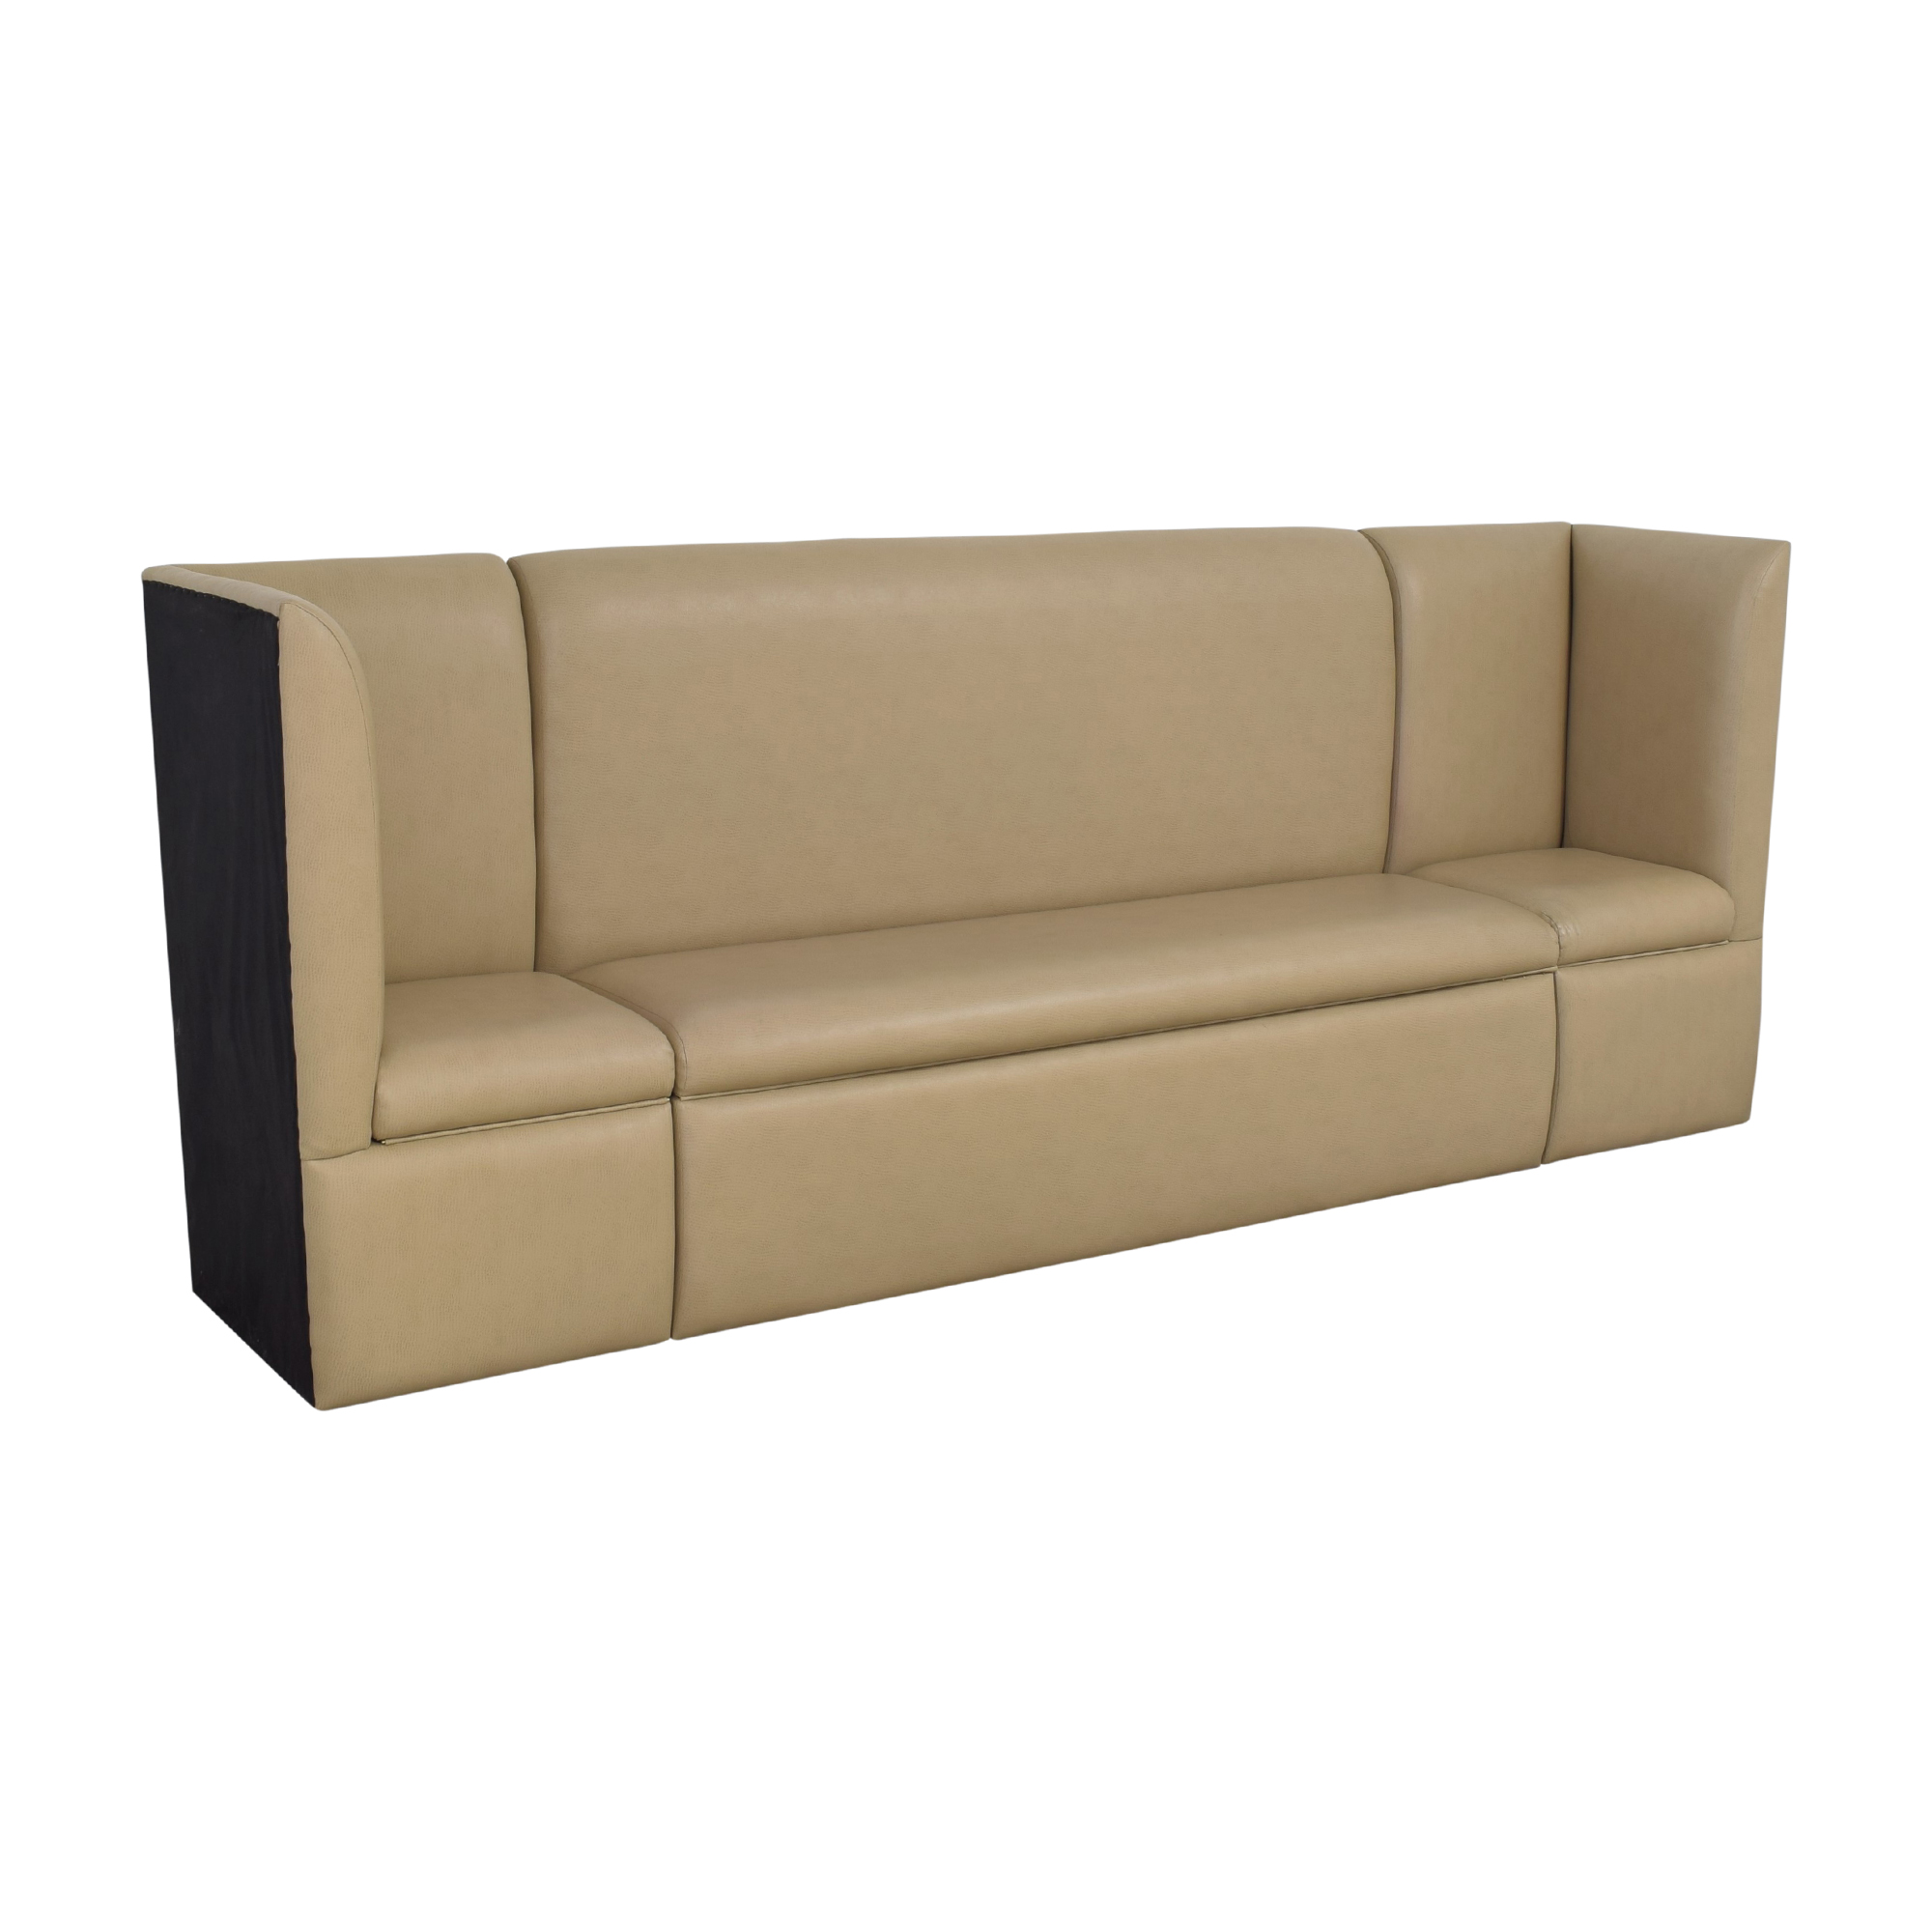 Custom Contemporary Sectional Storage Banquette price